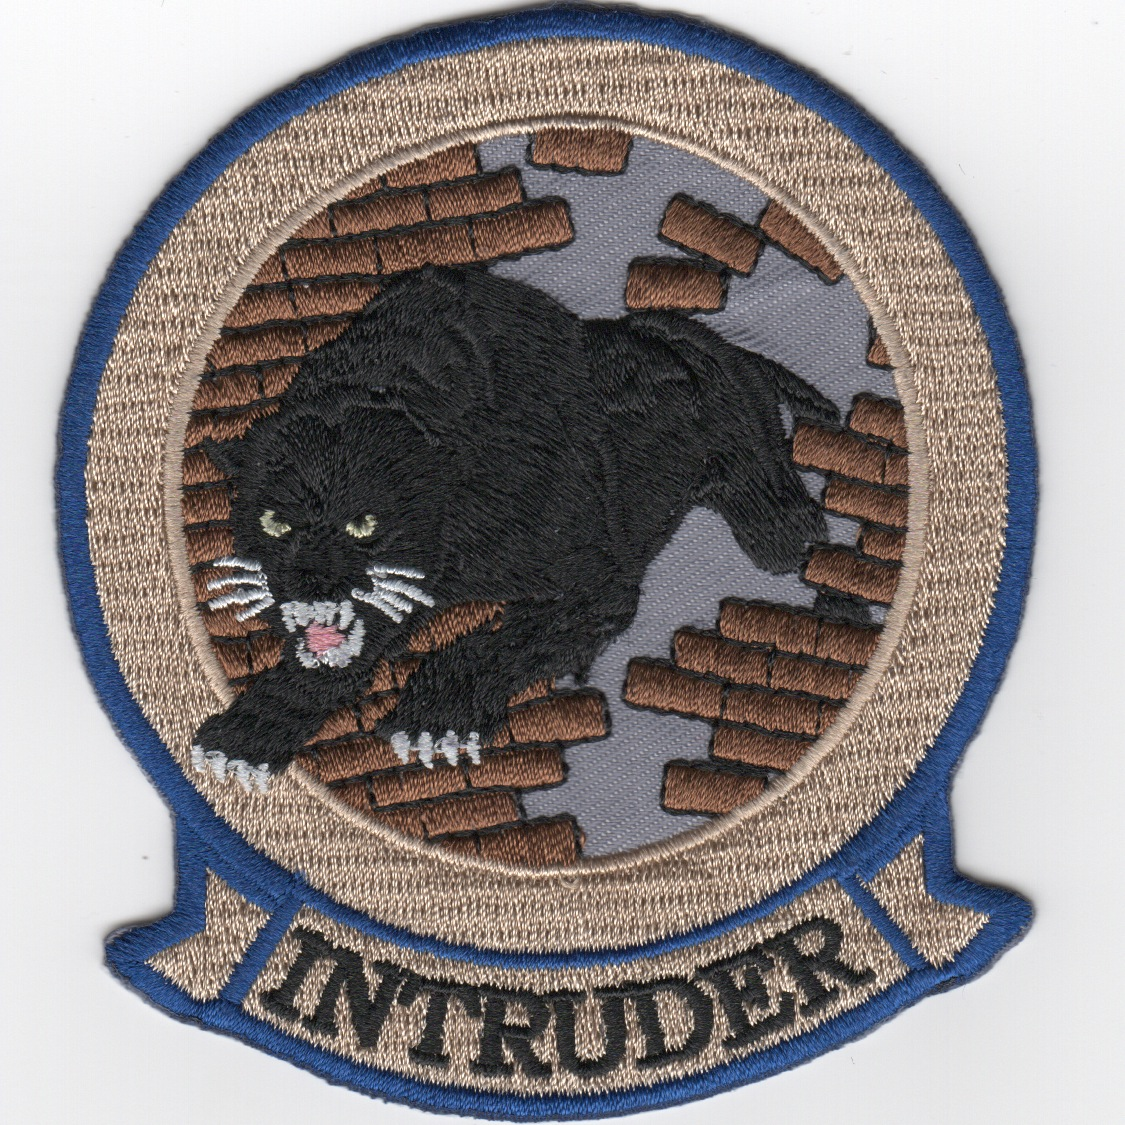 Intruder 'Black Panther' Patch